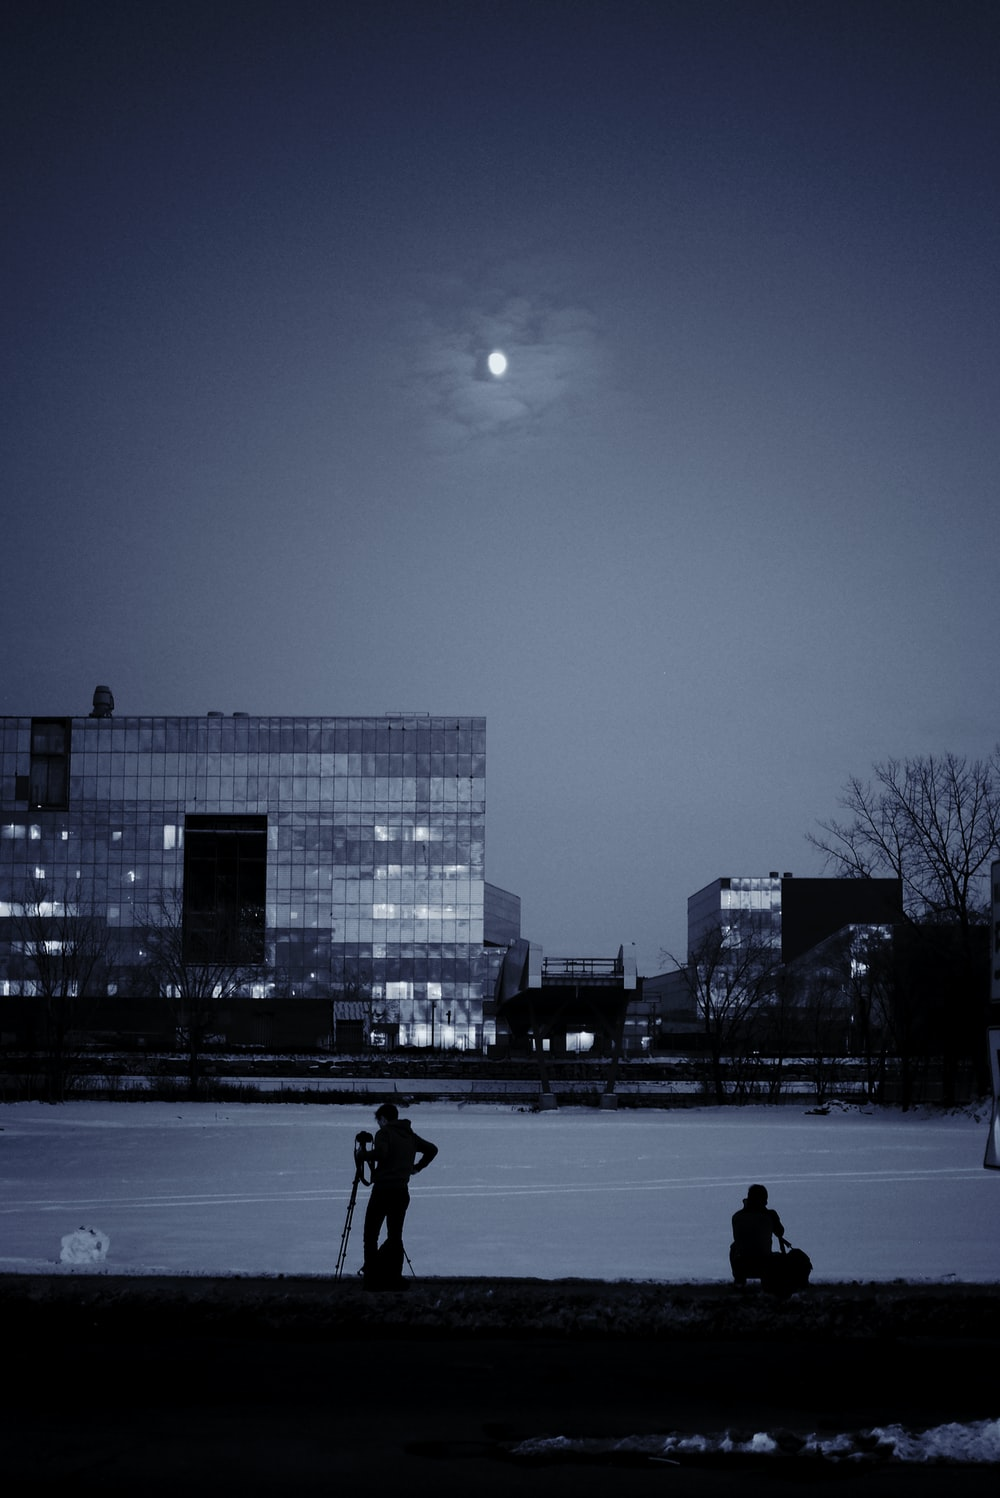 peope near snow field during nighttime